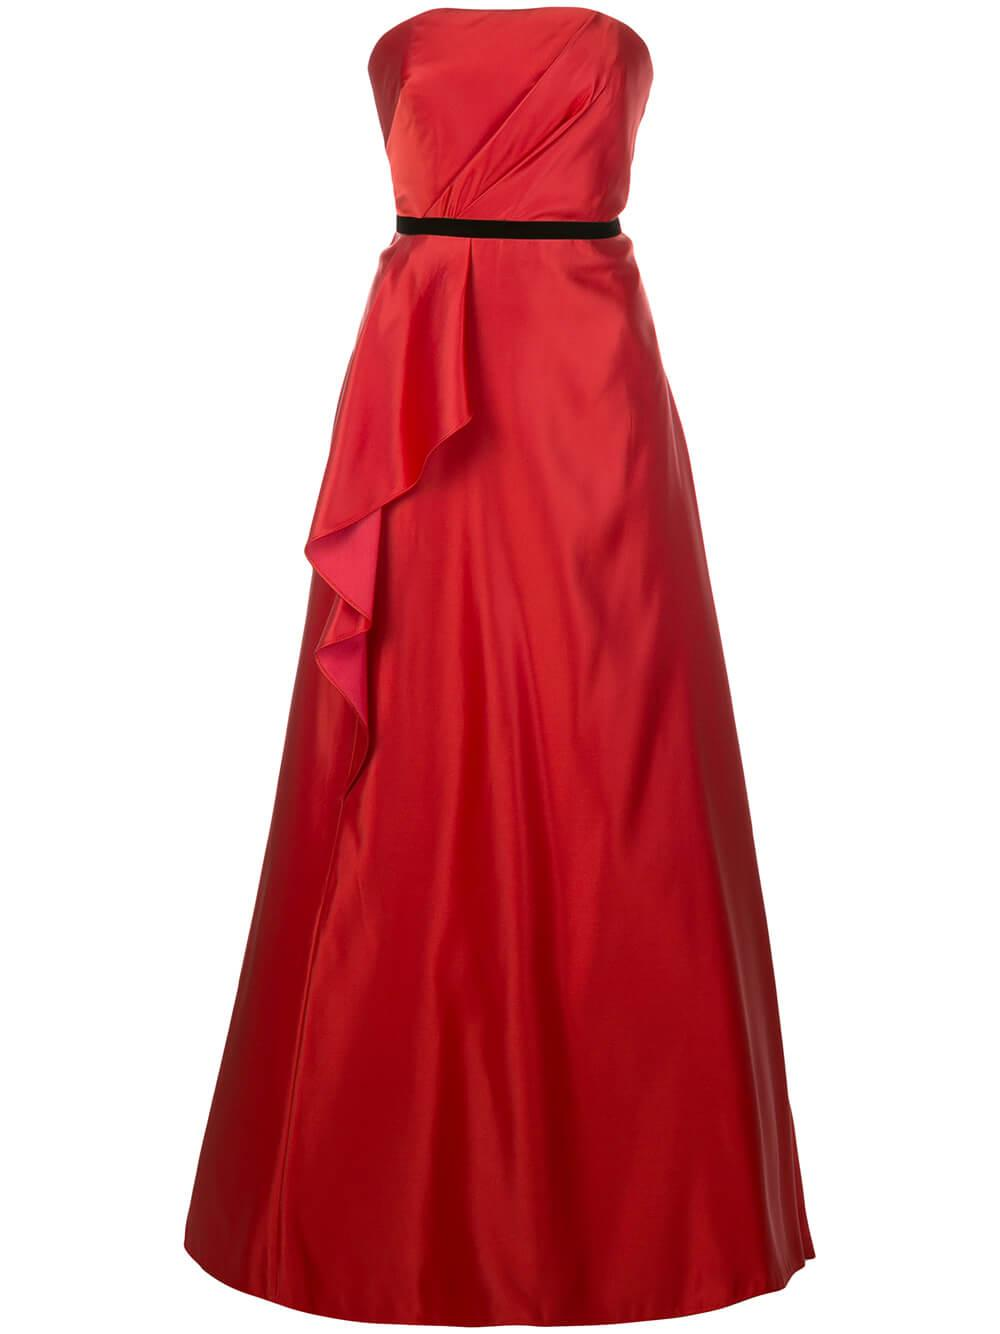 Strapless Satin Ball Gown Item # N36G1139